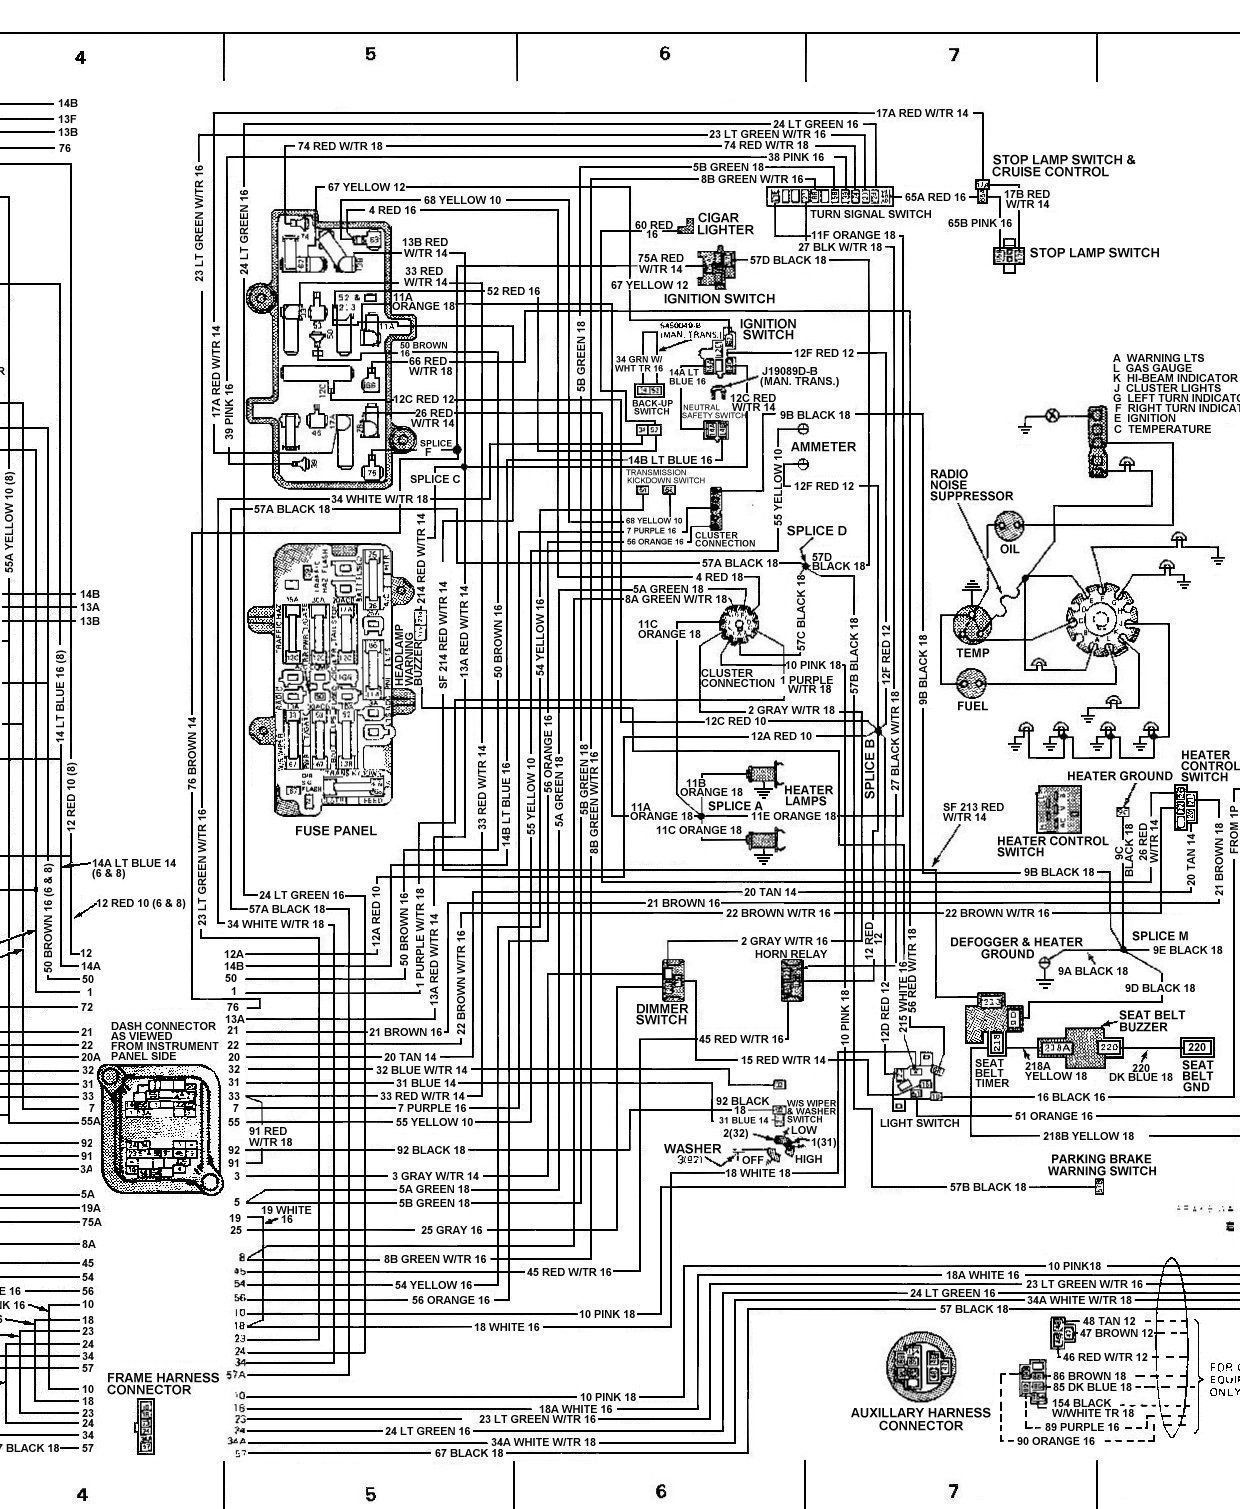 232951 2006 vw jetta wiring diagram vw jetta diesel wiring diagram \u2022 free vw jetta wiring diagram at mifinder.co